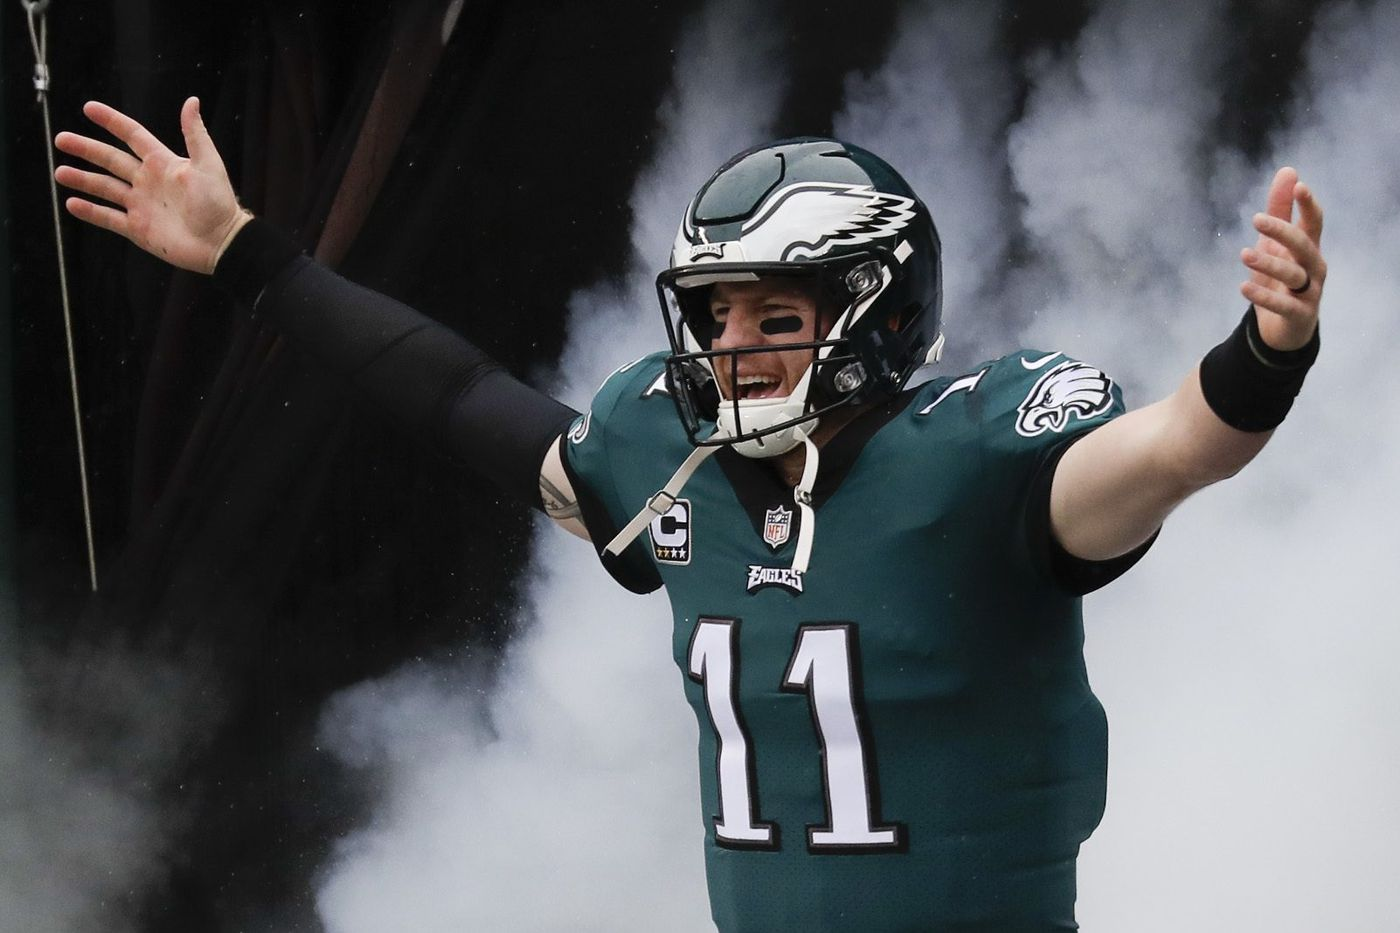 Hallelujah! Carson Wentz returns to give Eagles — and their fans — hope | Marcus Hayes